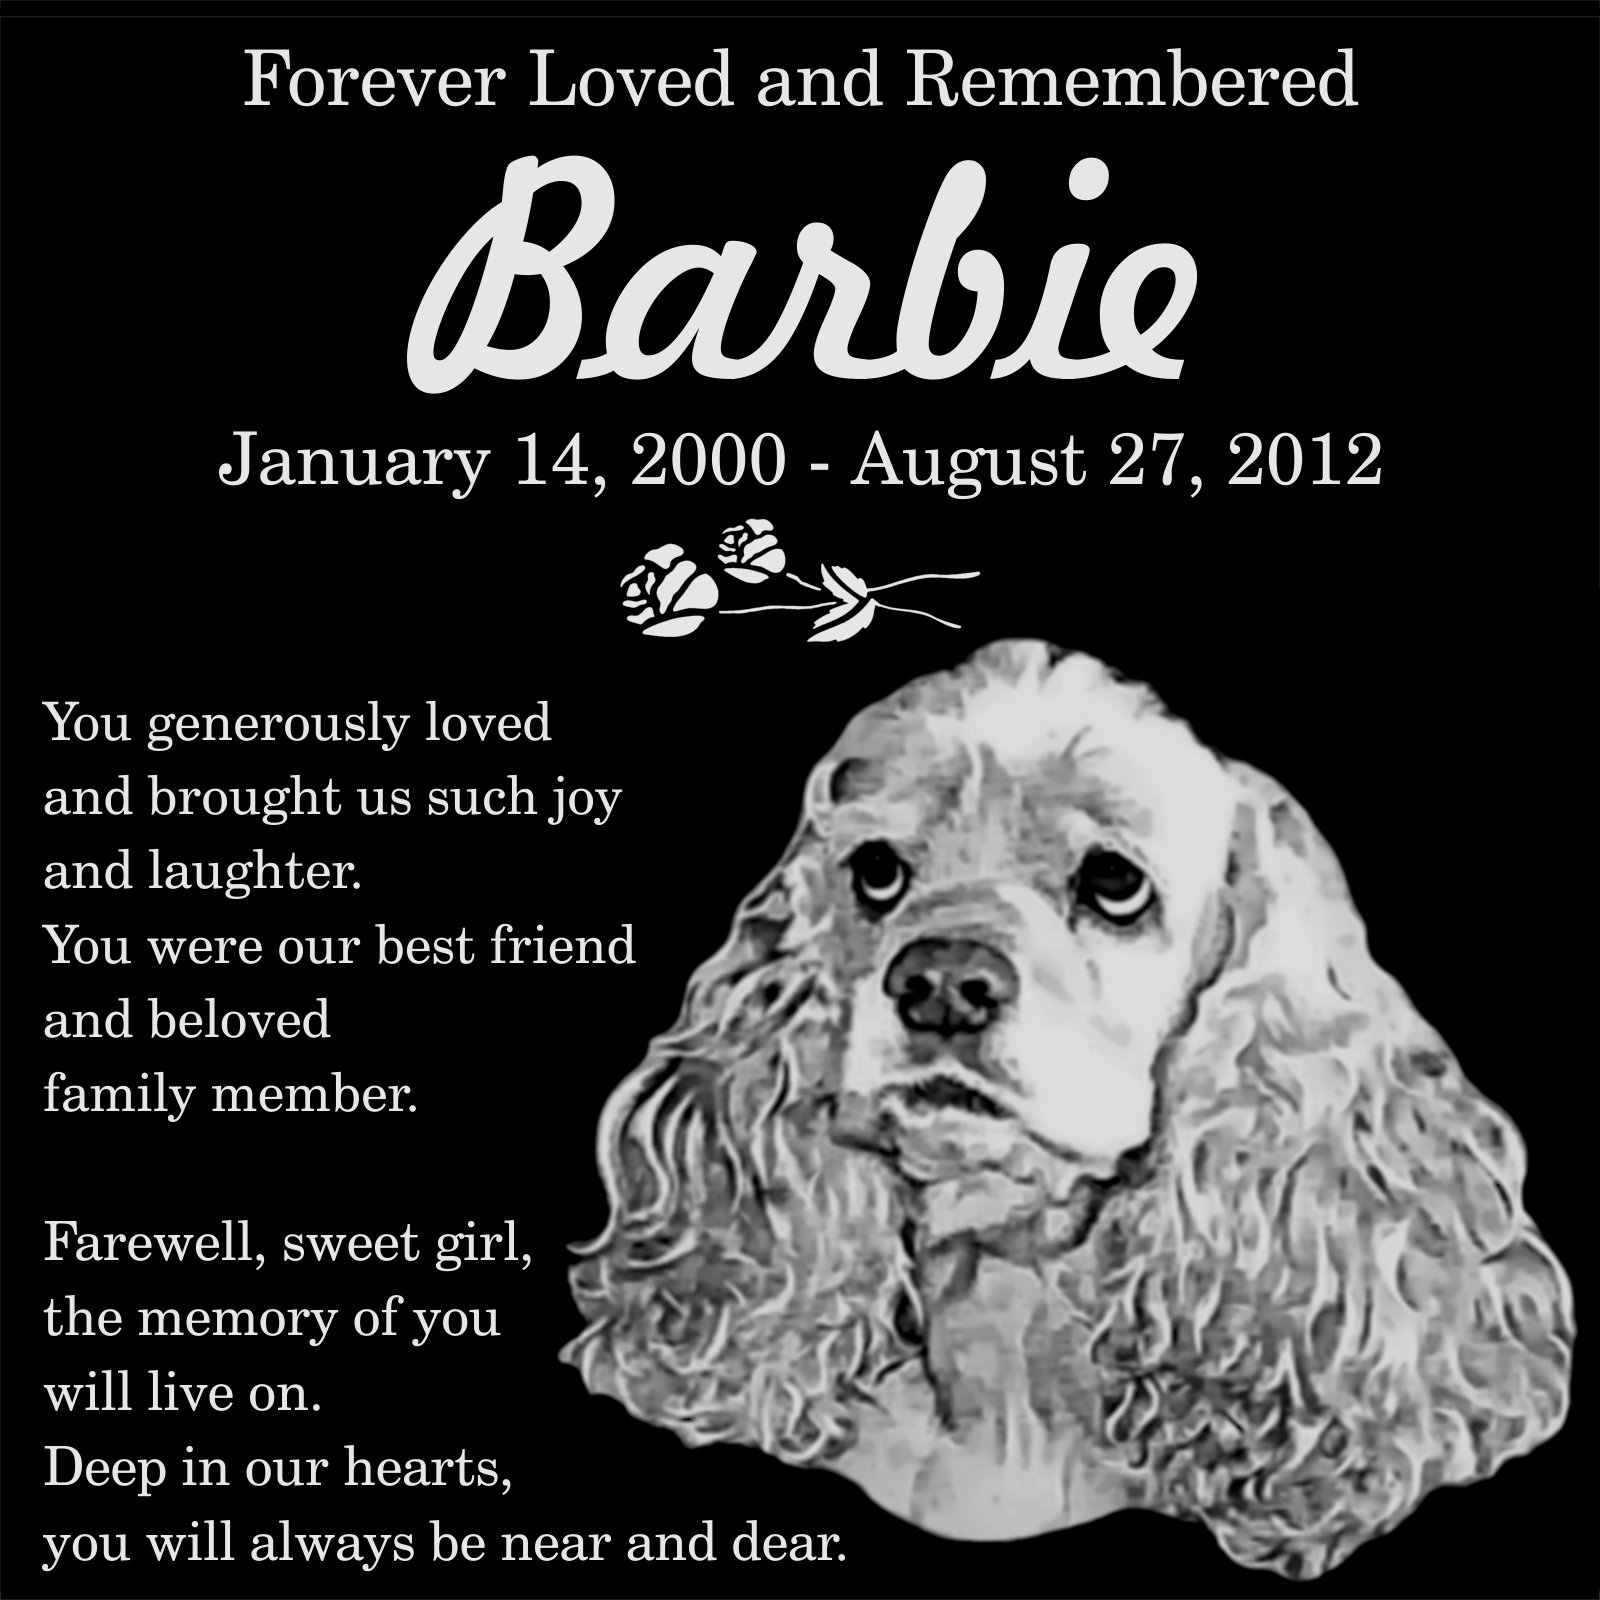 Personalized American Cocker Spaniel Dog Pet Memorial 12''x12'' Engraved Black Granite Grave Marker Head Stone Plaque BAR2 by Lazzari Collections (Image #1)